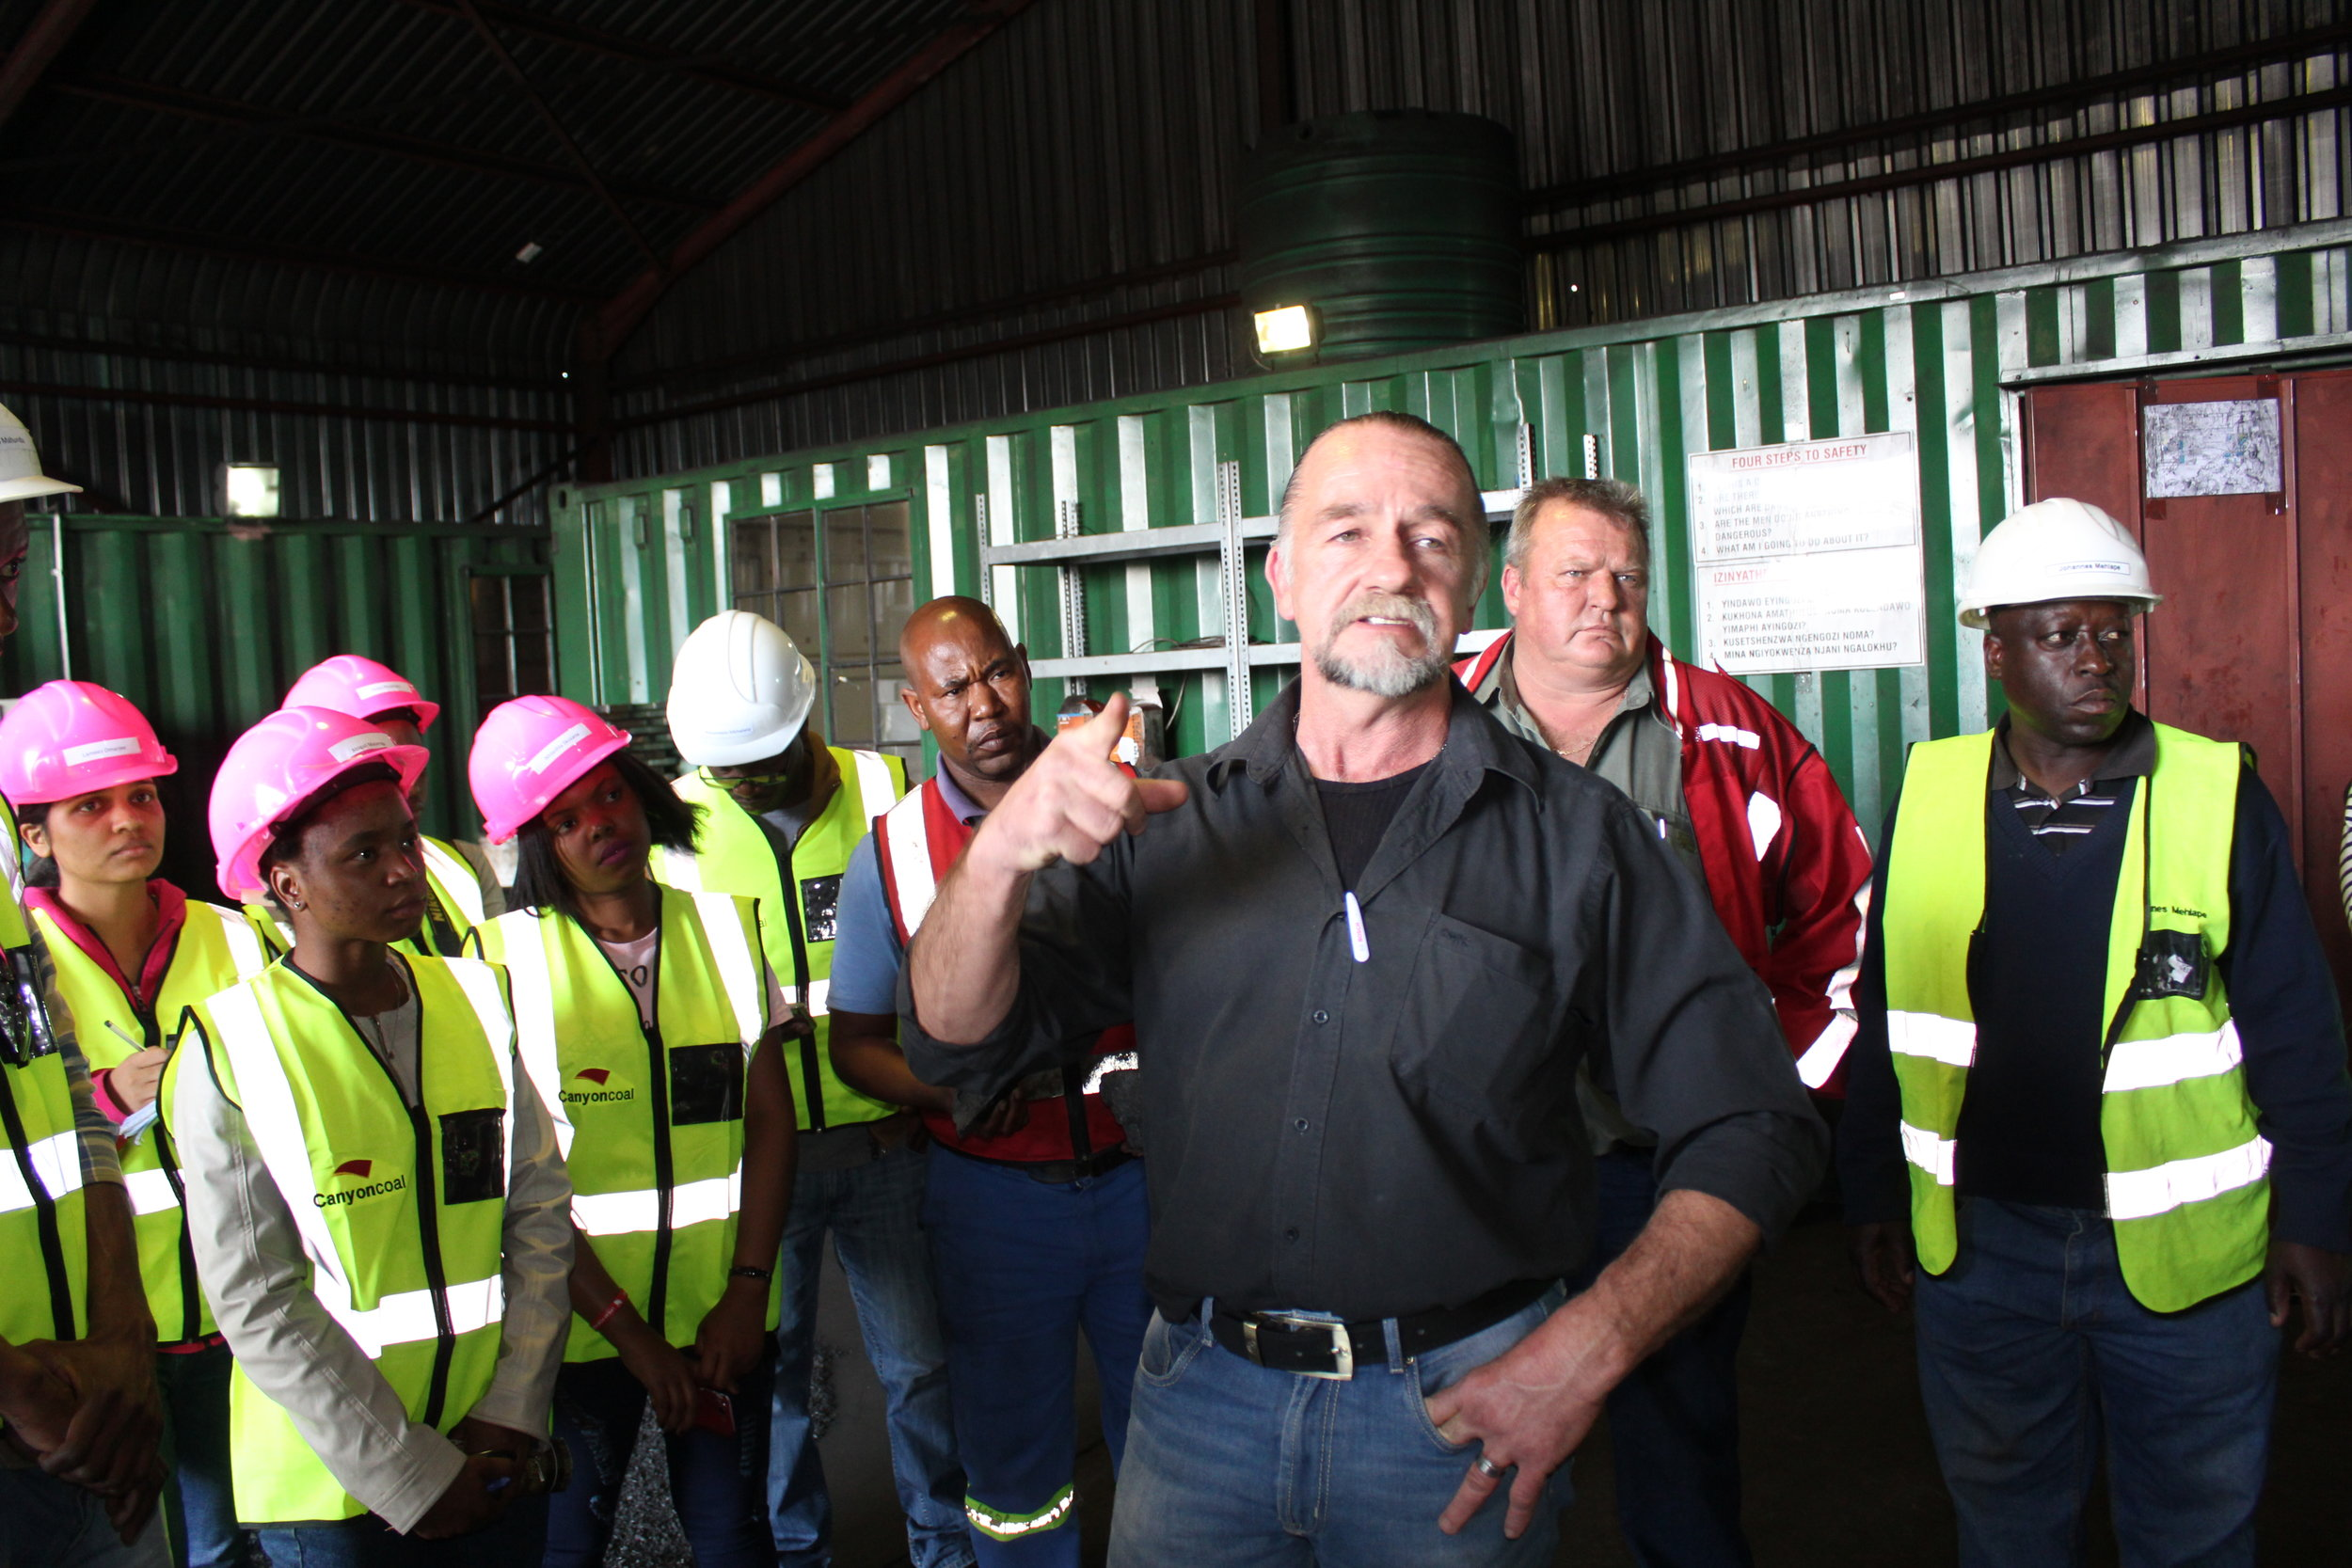 Japie Kleinhans – Ngwenya contract site manager, also answered questions from the media.